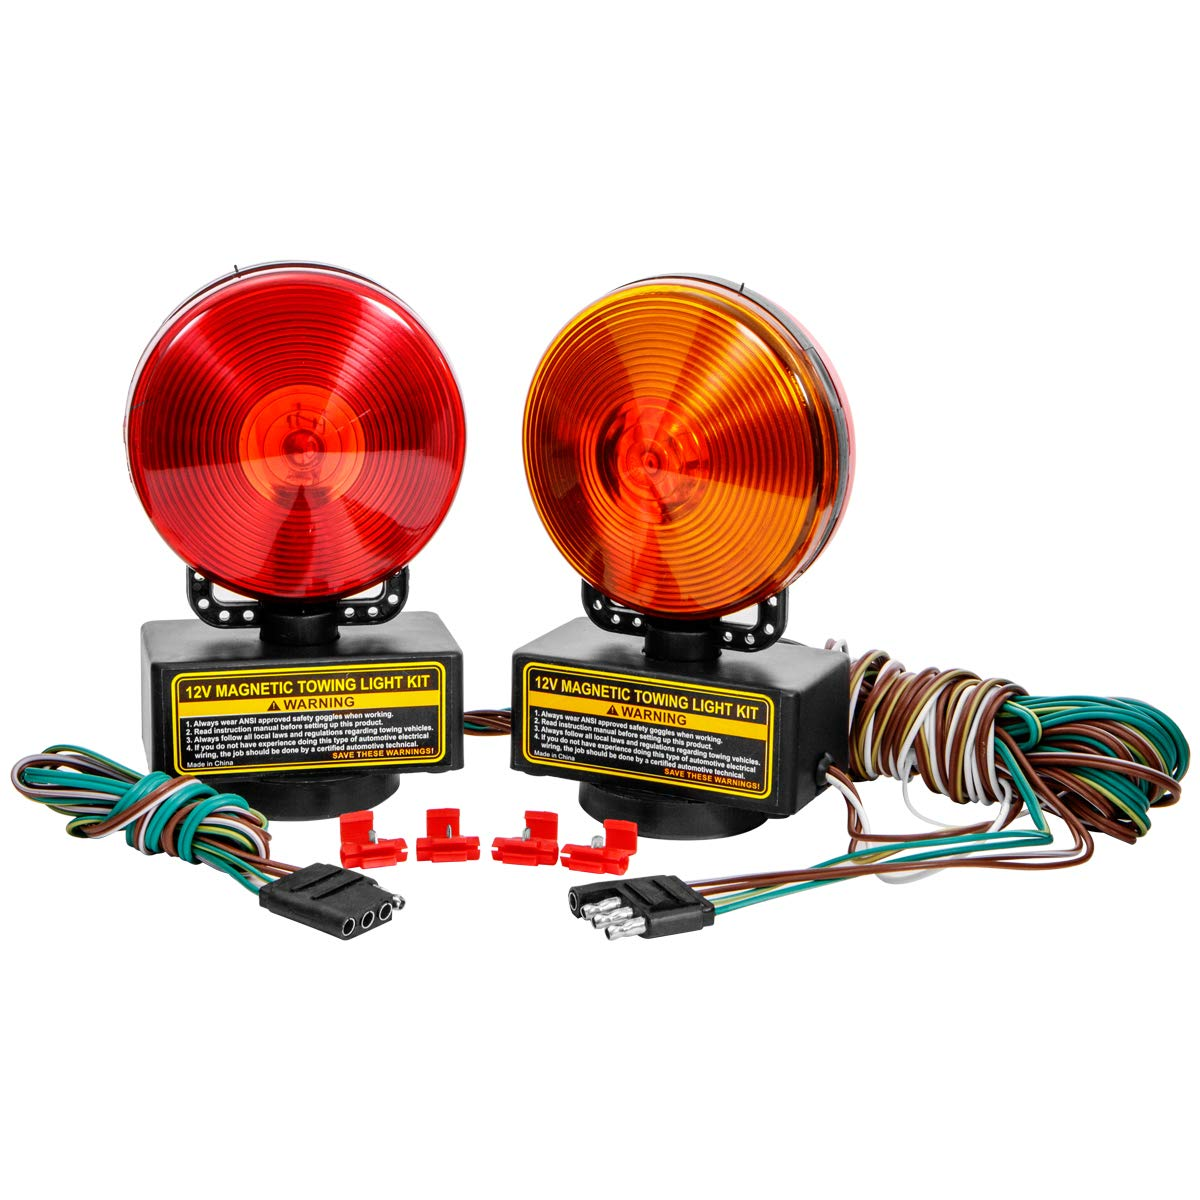 XtremepowerUS 12v Magnetic Towing Lights Kit for Trailer RV Truck Boat or Car by XtremepowerUS